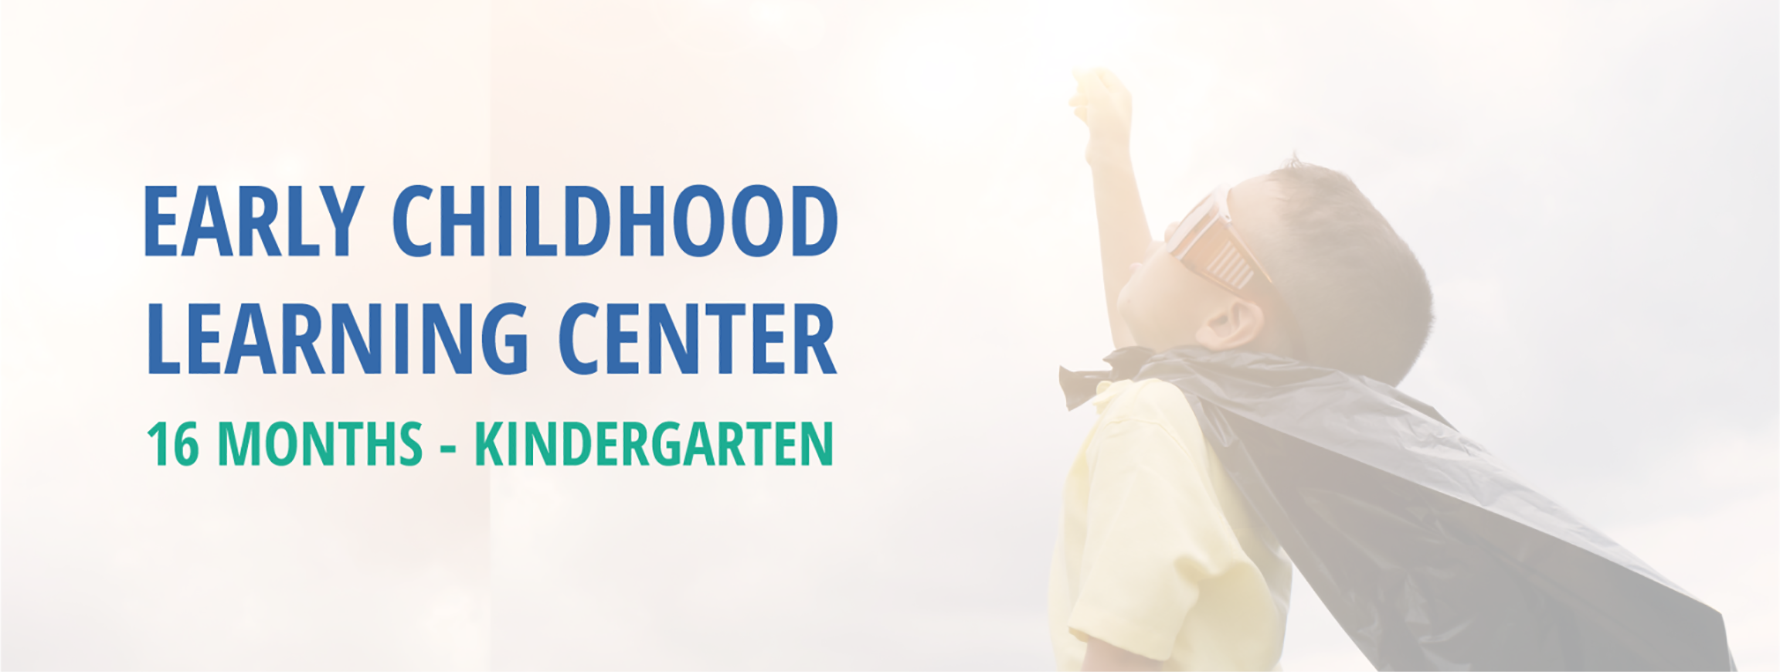 Early Childhood Learning Center: 16-months-Kindergarten. Image of a child in a superhero costume